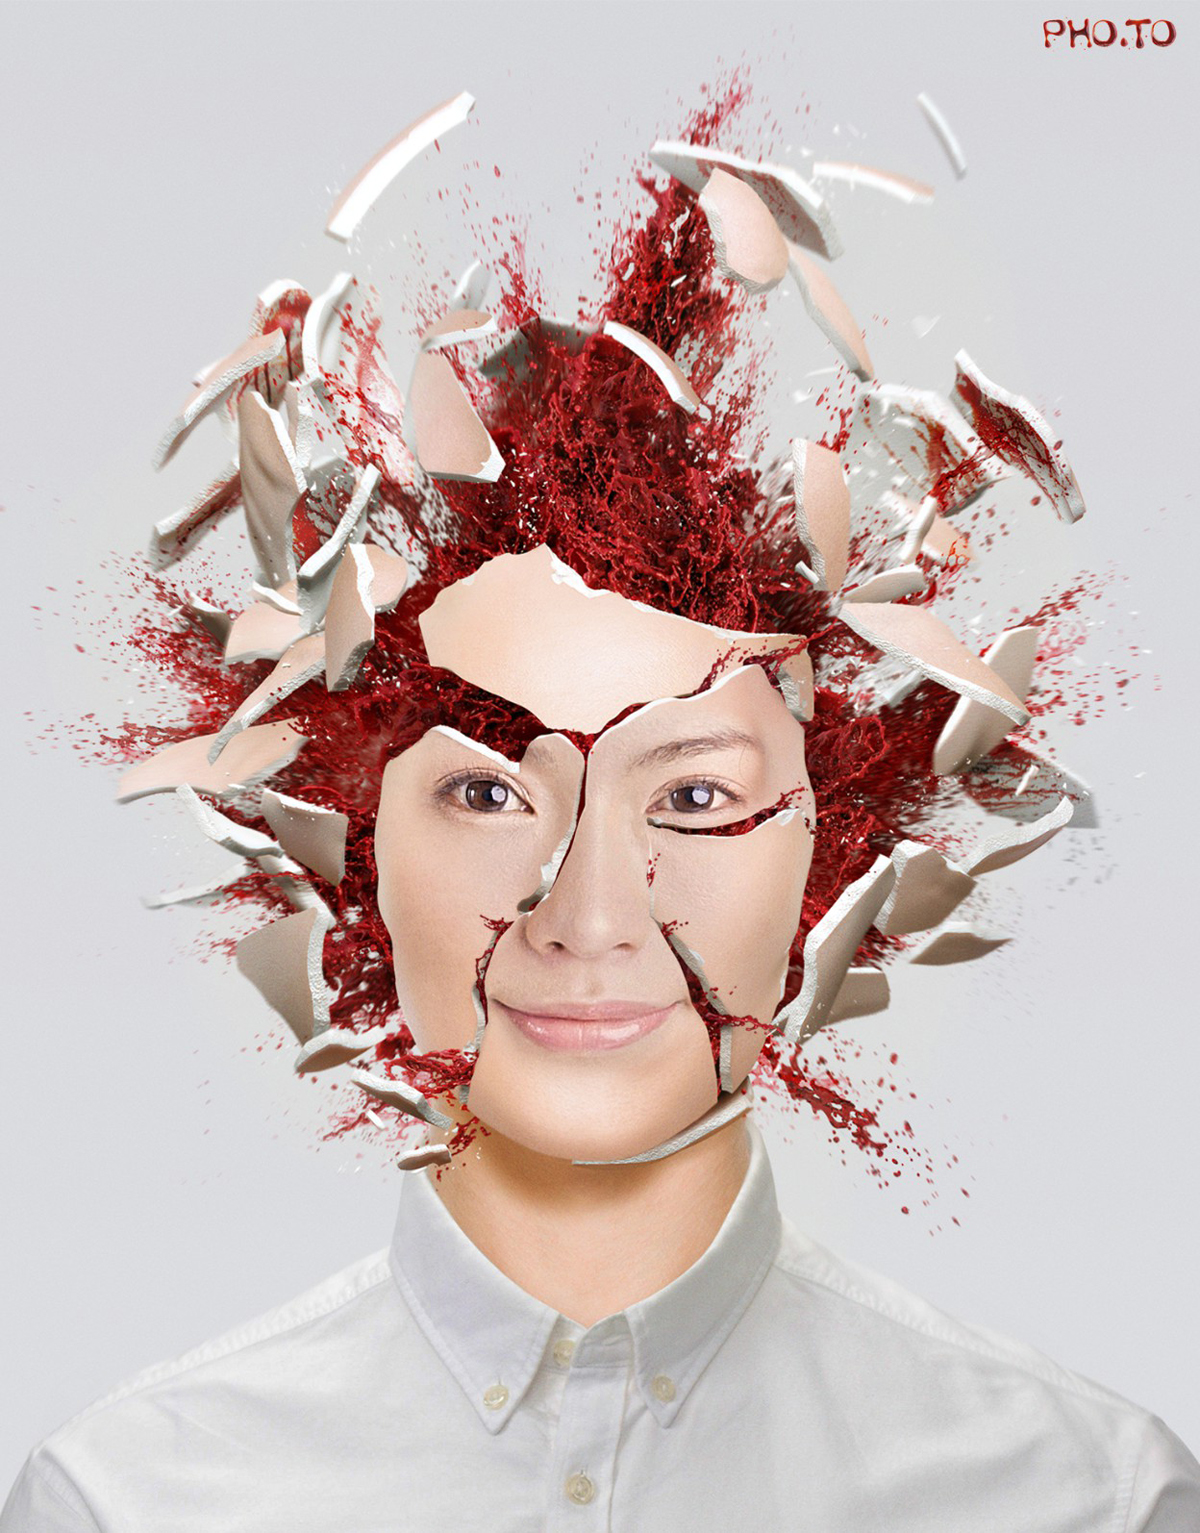 Head explosion photo effect for the Halloween season.